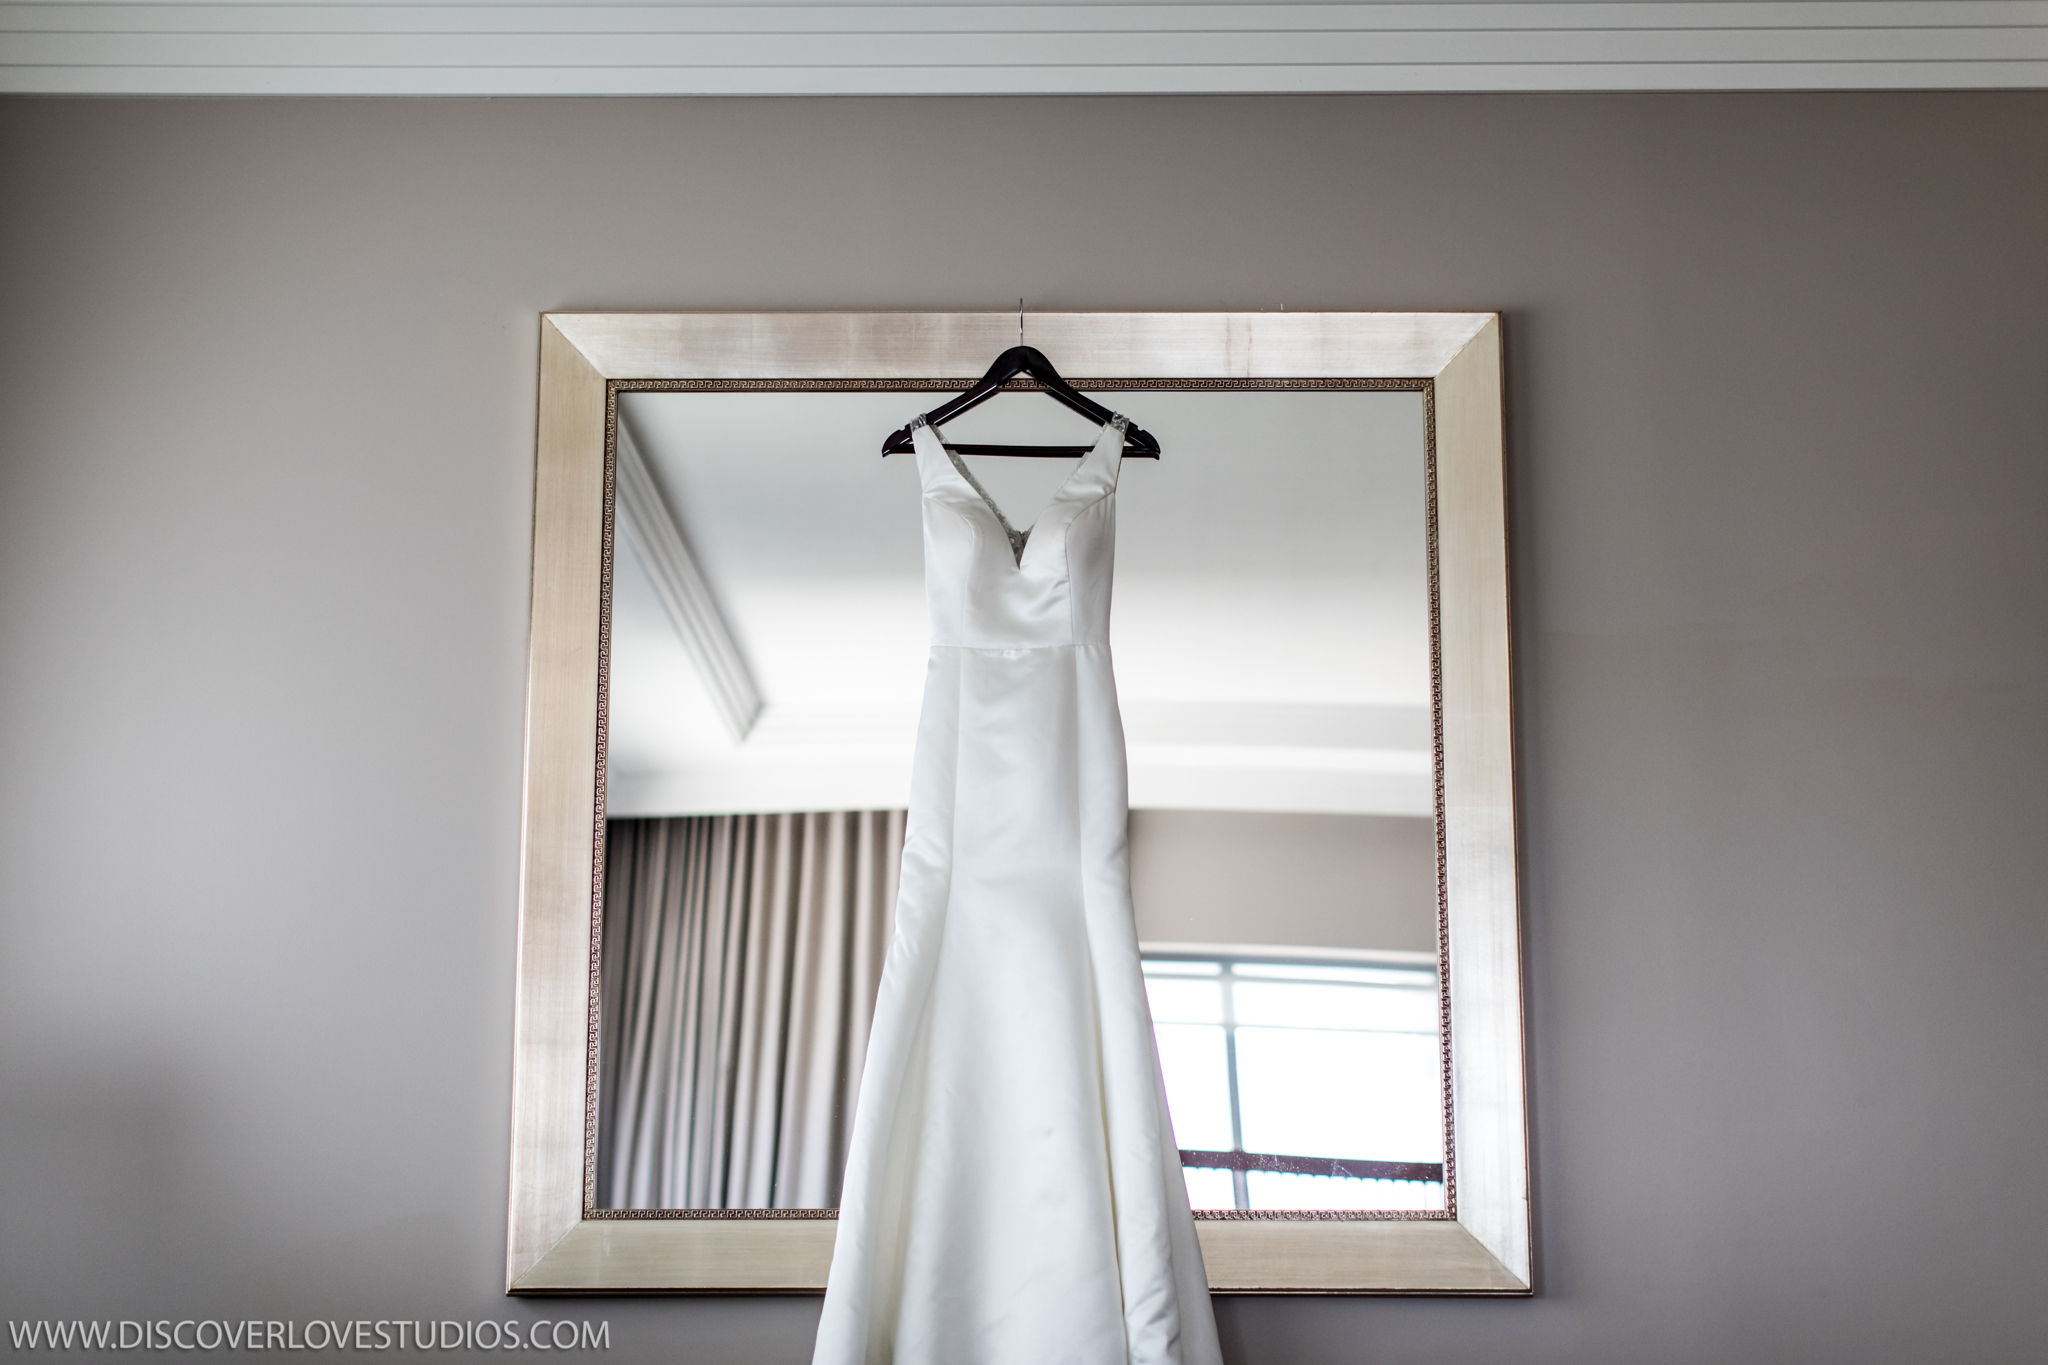 Discover Love Studios captures detail shot of bridal gown before wedding ceremony at The Mint Museum Uptown